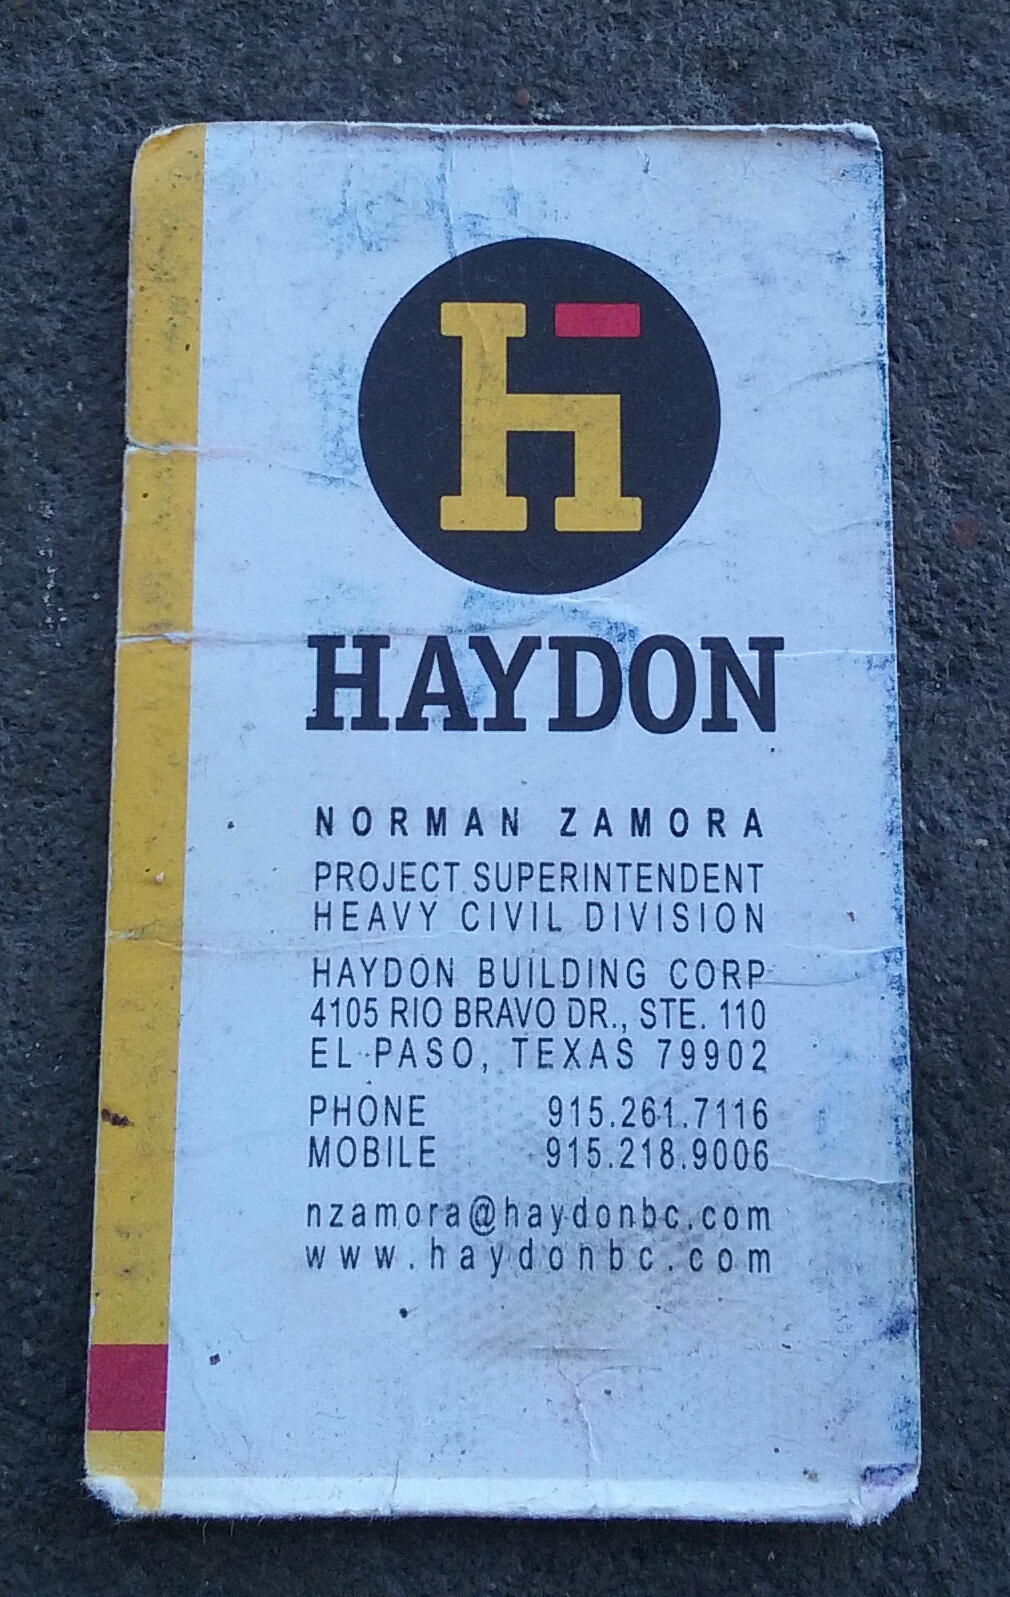 Phaethon star sober over up dated up dated 9 12 2016 9 11 2016 one of the business cards given to me outside of business that i have actually been sent to ex hazen in santa fe no one was there social security magicingreecefo Choice Image